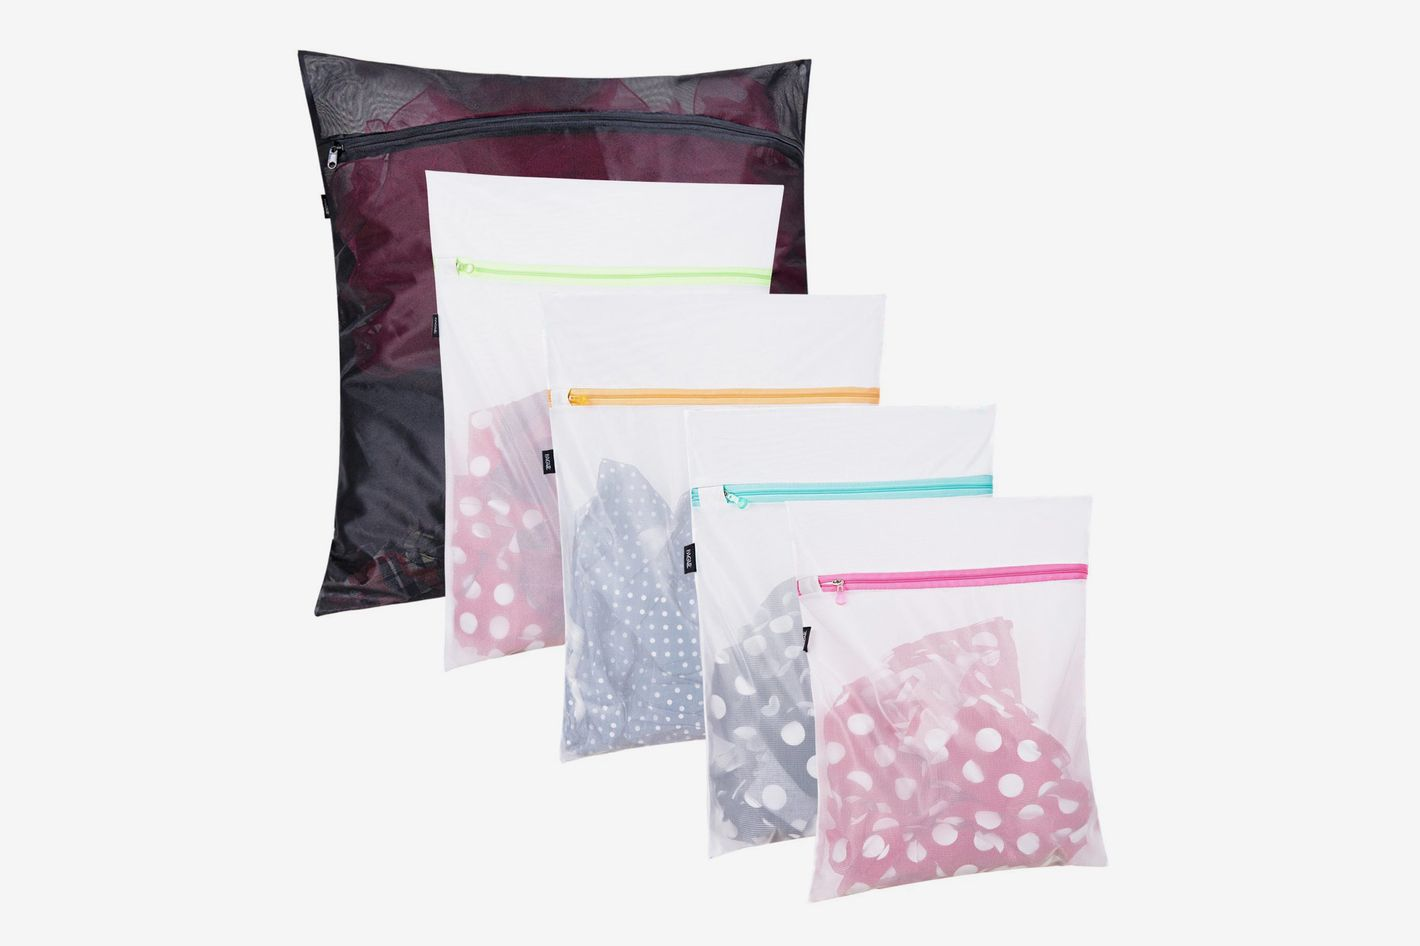 Set of 5 Mesh Laundry Bags